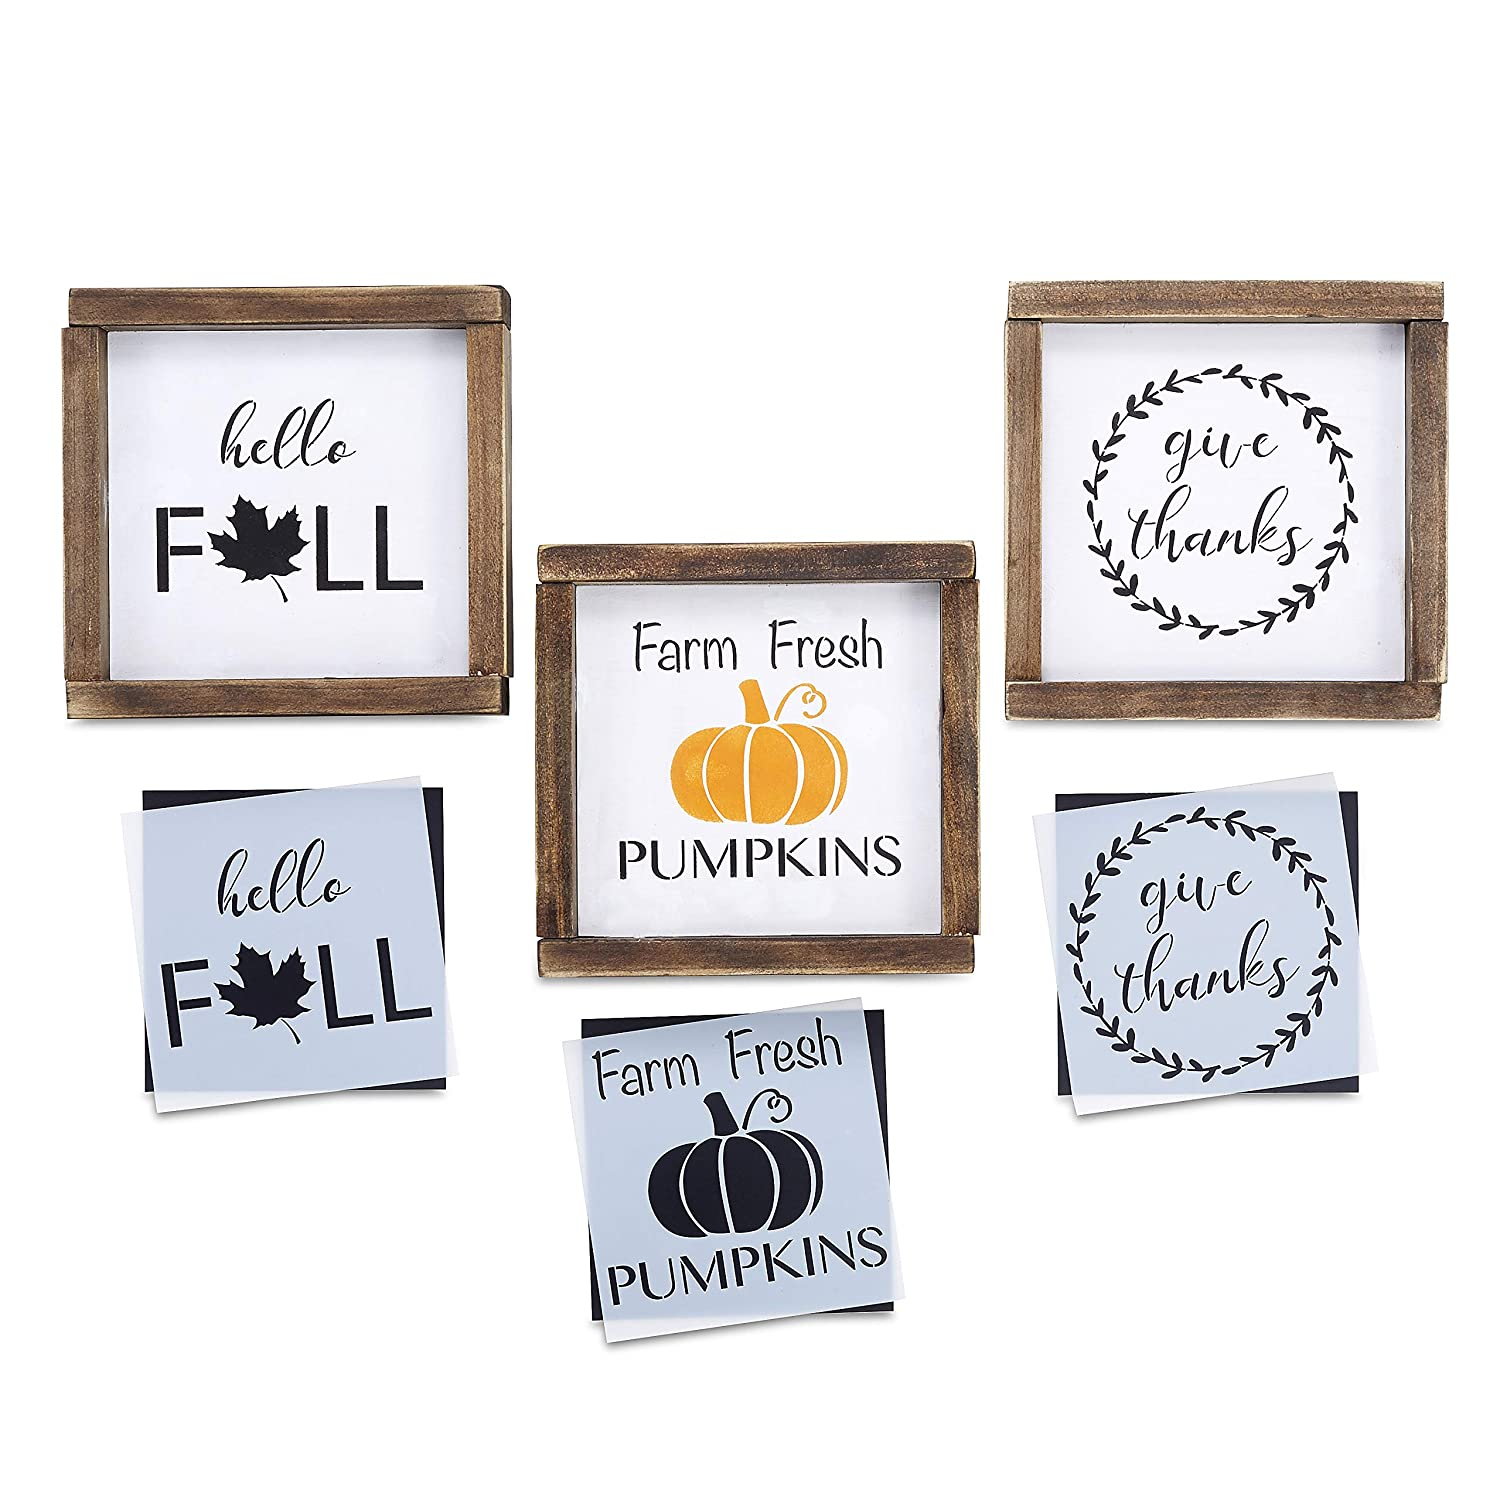 Give Thanks, Farm Fresh Pumpkins, Hello Fall Stencil Set | Reusable Sign Stencils for Painting on Wood | 3 Pack | Ideal for Wood Signs, Walls, Furniture (DIY Fall Home Decor) Essential Stencil